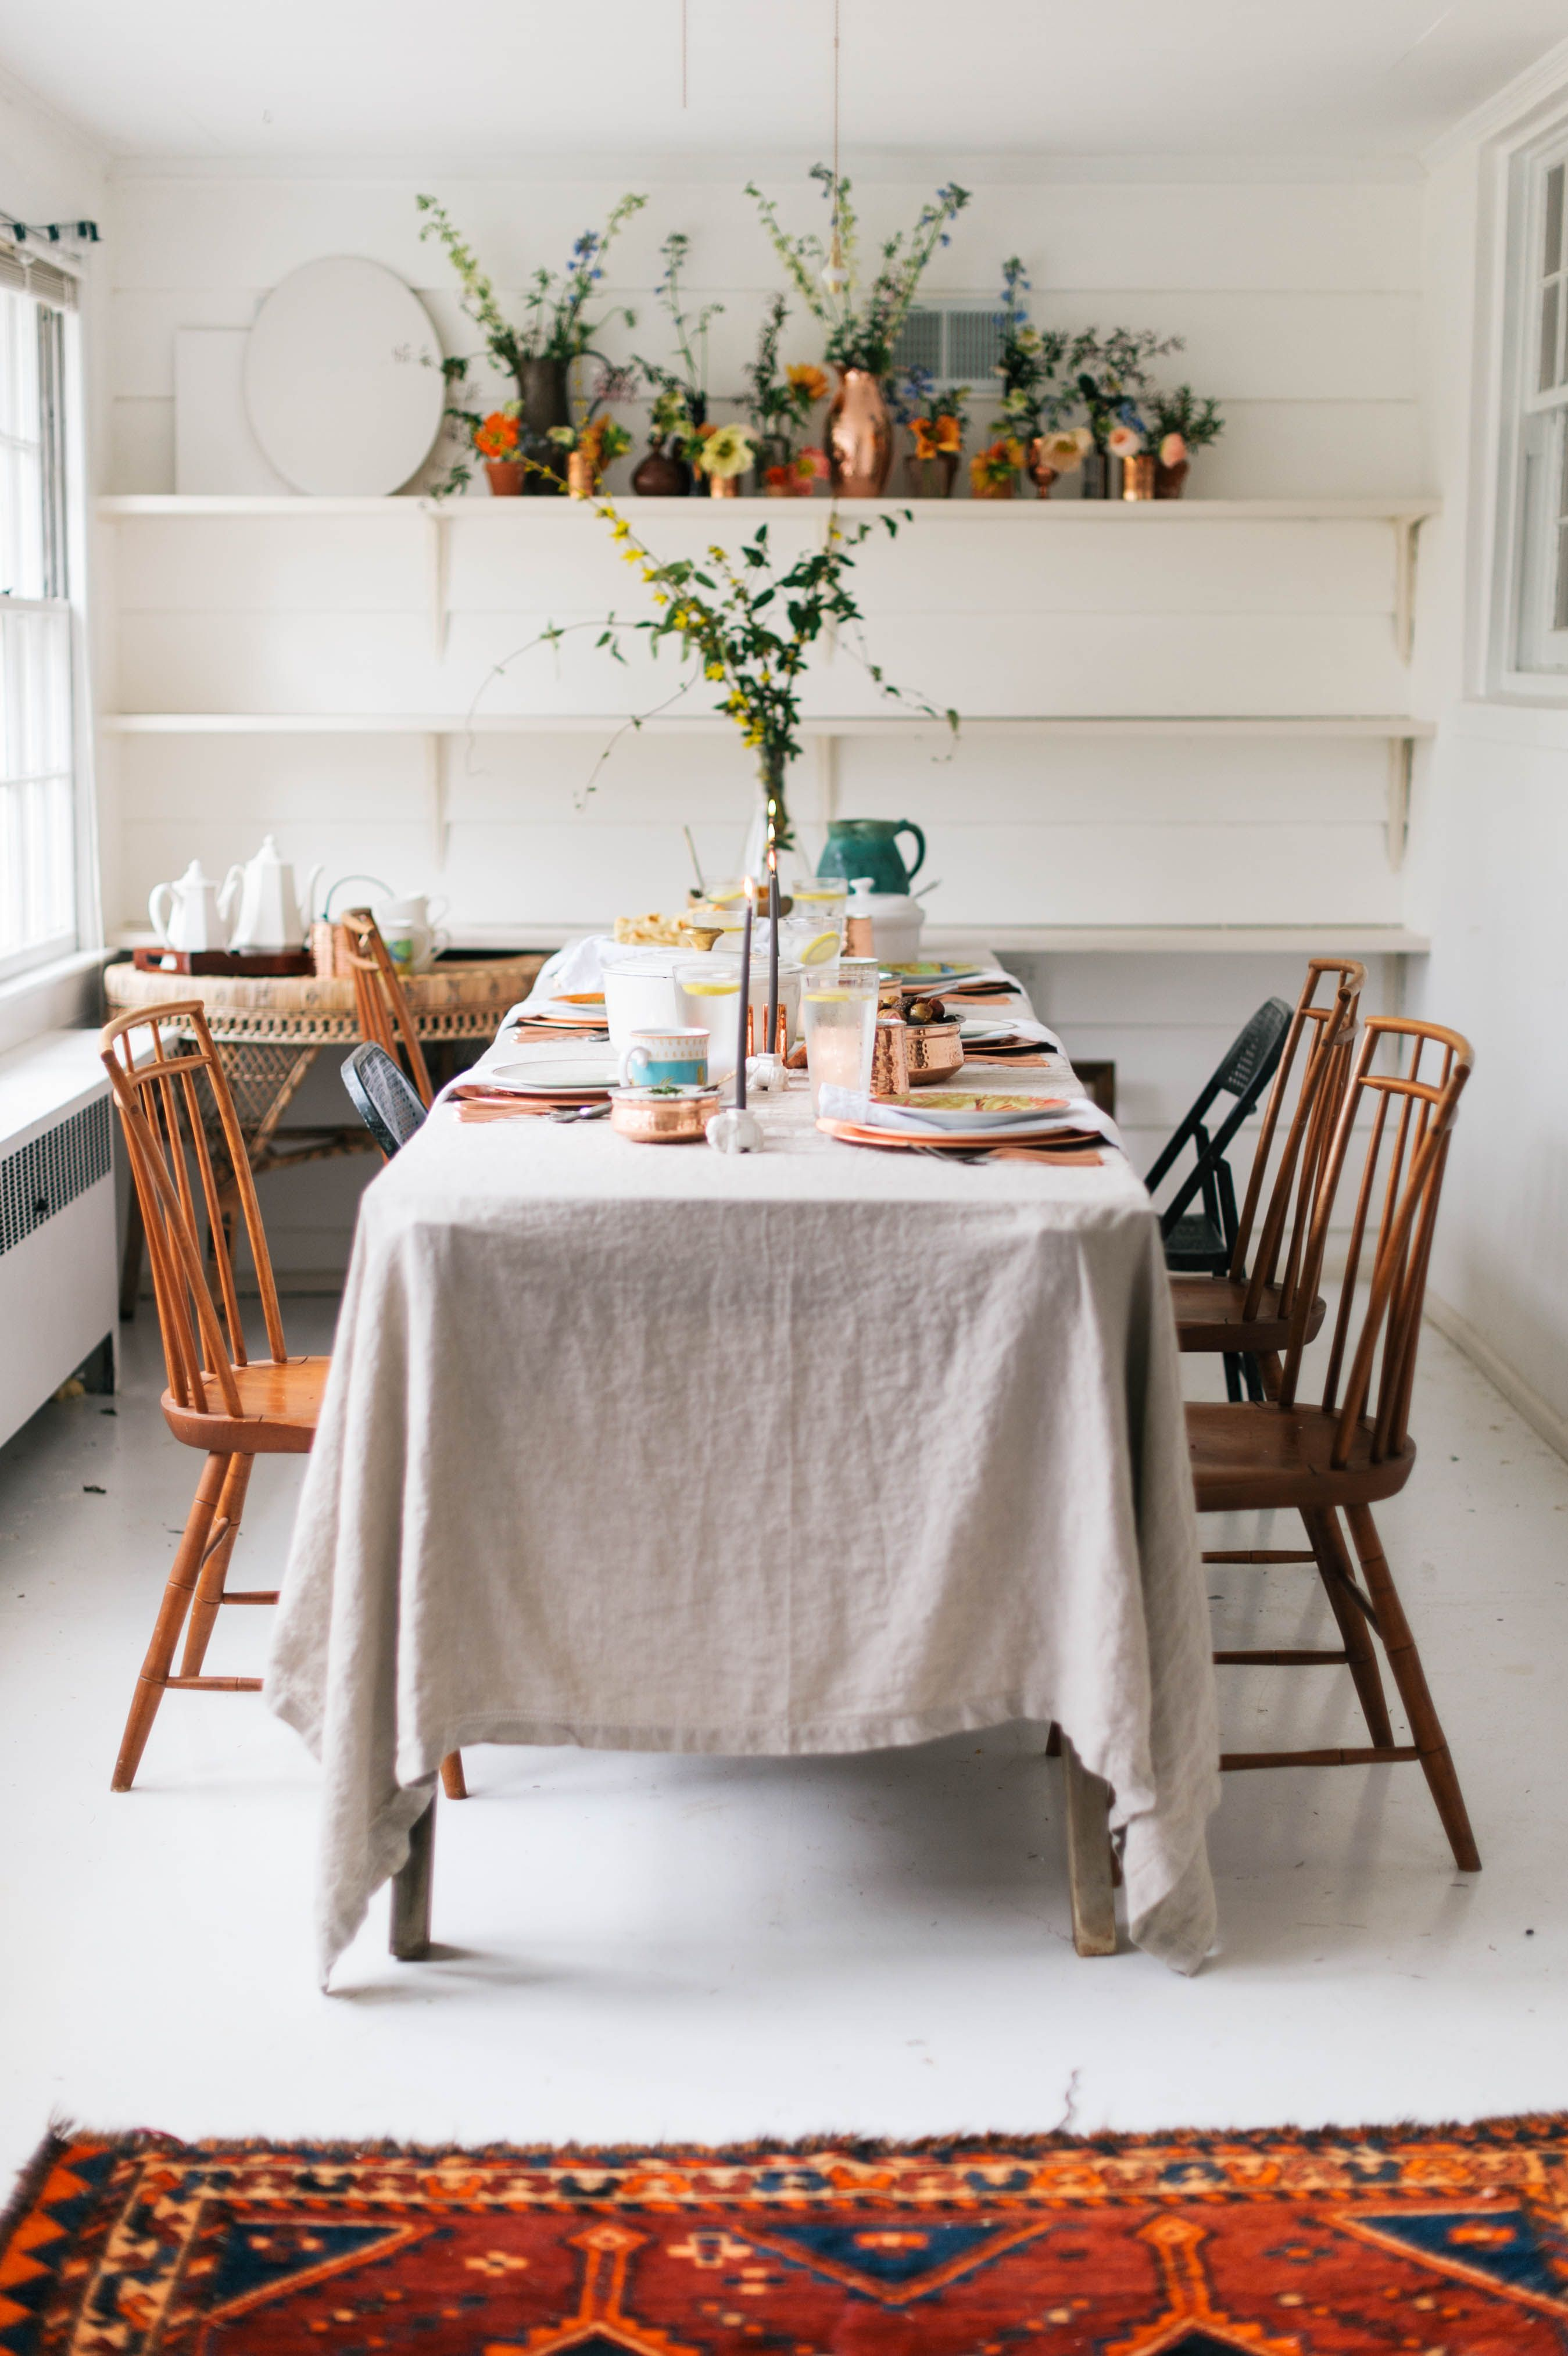 An India Inspired Feast With Williams Sonoma A Daily Something Dining Room Tablecloth Dining Room Design Rustic Dining Room Table